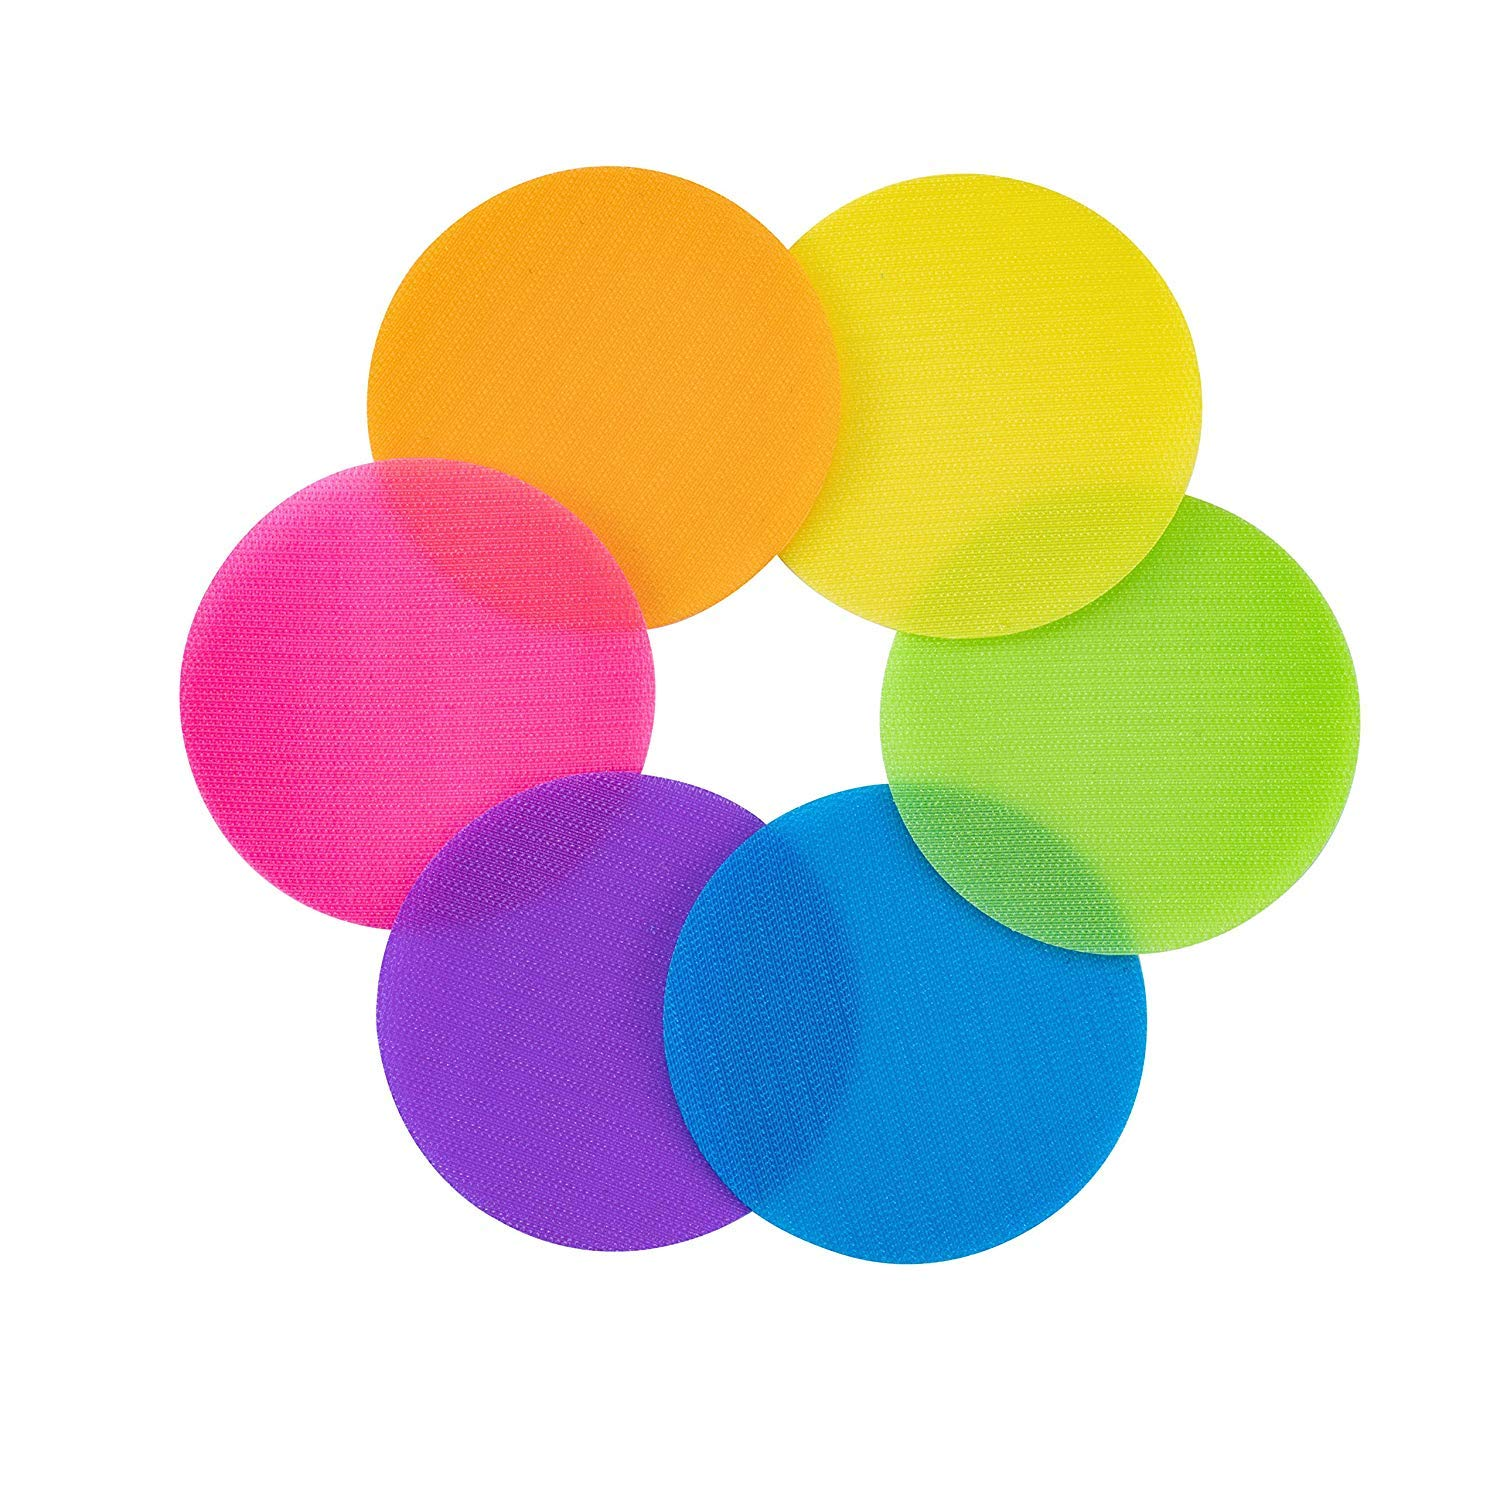 Carpet Markers for Classroom, Sit Spots (30 Pack of Circles), 5 inches Spot Markers for Teaching, Games, Sport